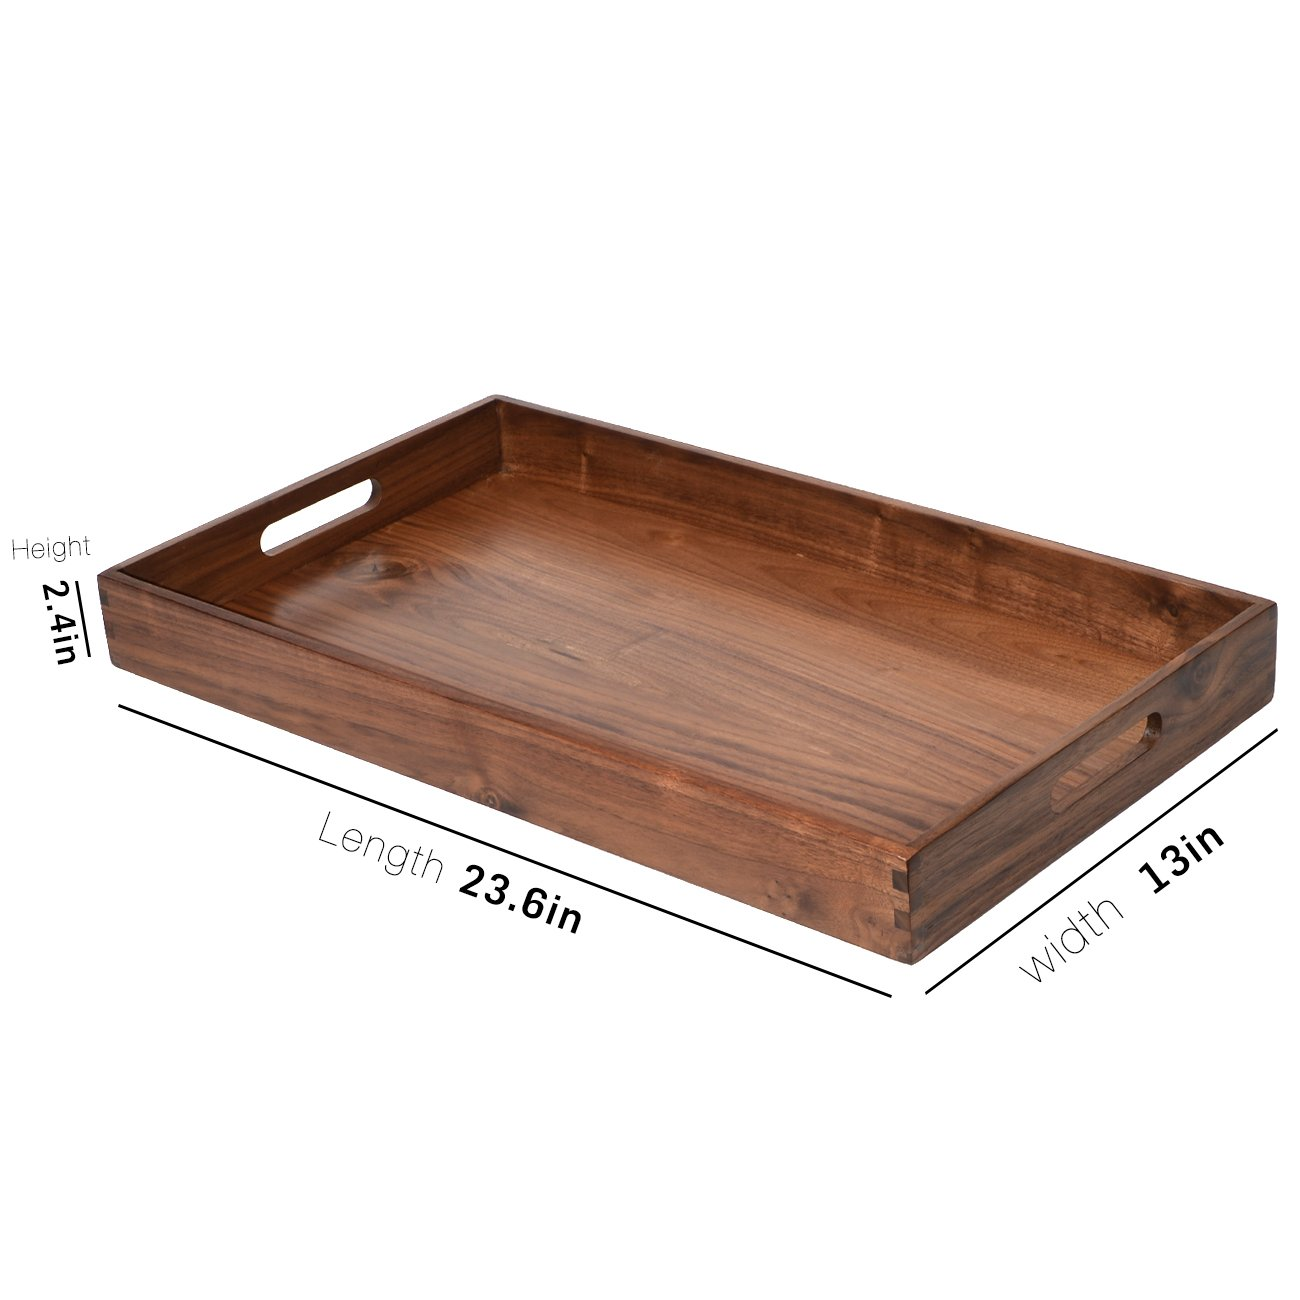 Kingcraft 24x13 Extra Large Wooden Tray Ottoman Tray With Handle Fsc Natural Handmade Black Walnut Serving Tray Vintage Decorative Platters For